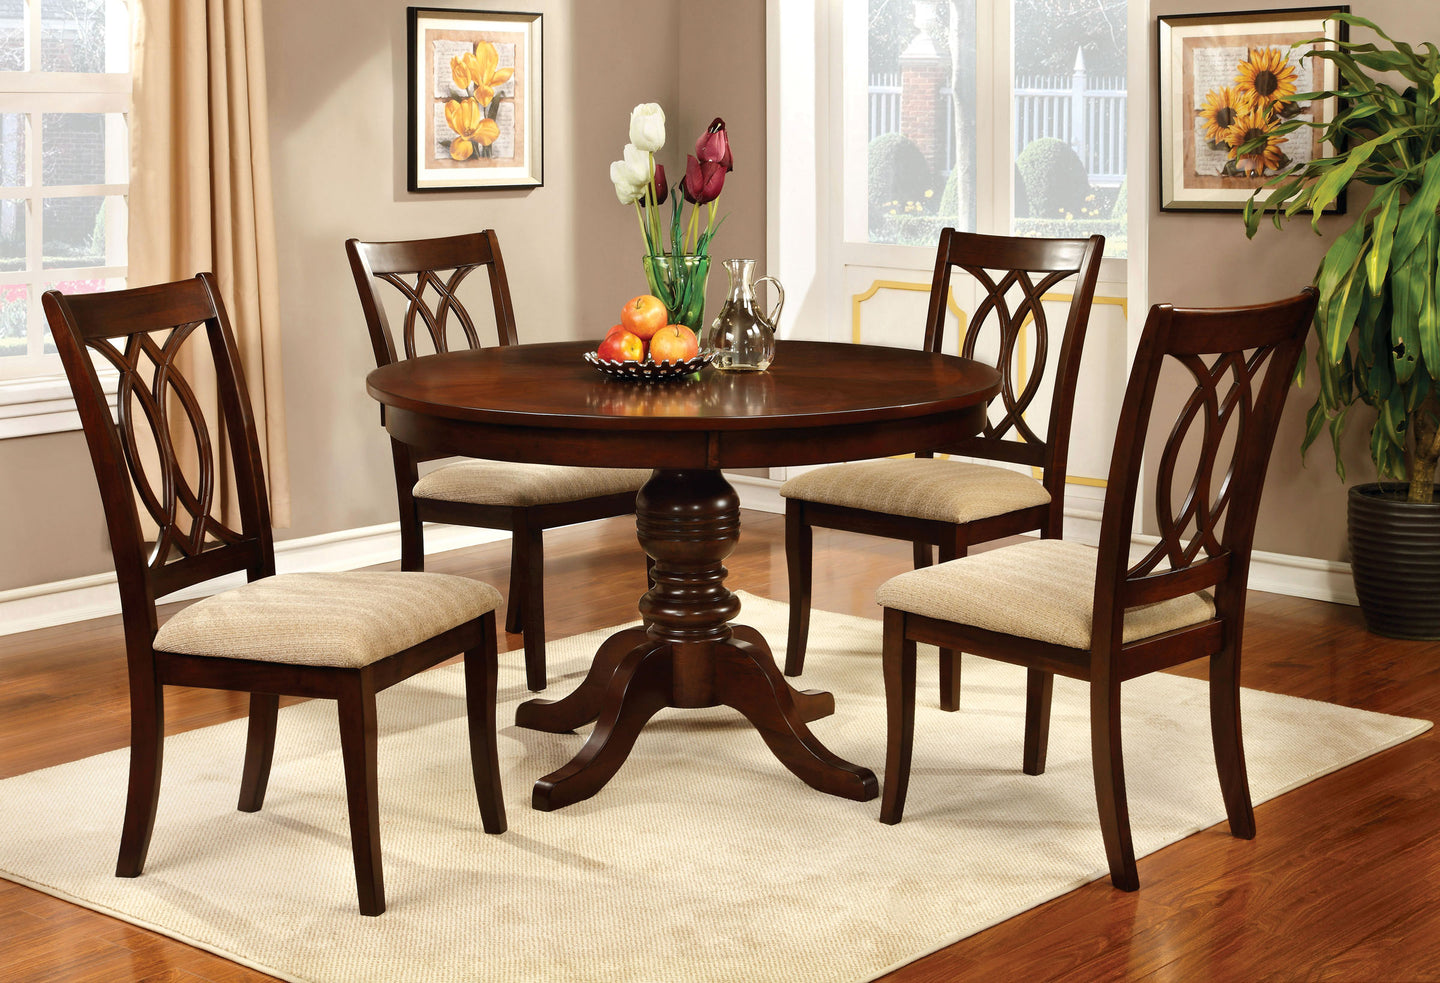 Carlisle CM3778RT 5 Pieces Transitional Brown Cherry Round Dining Set